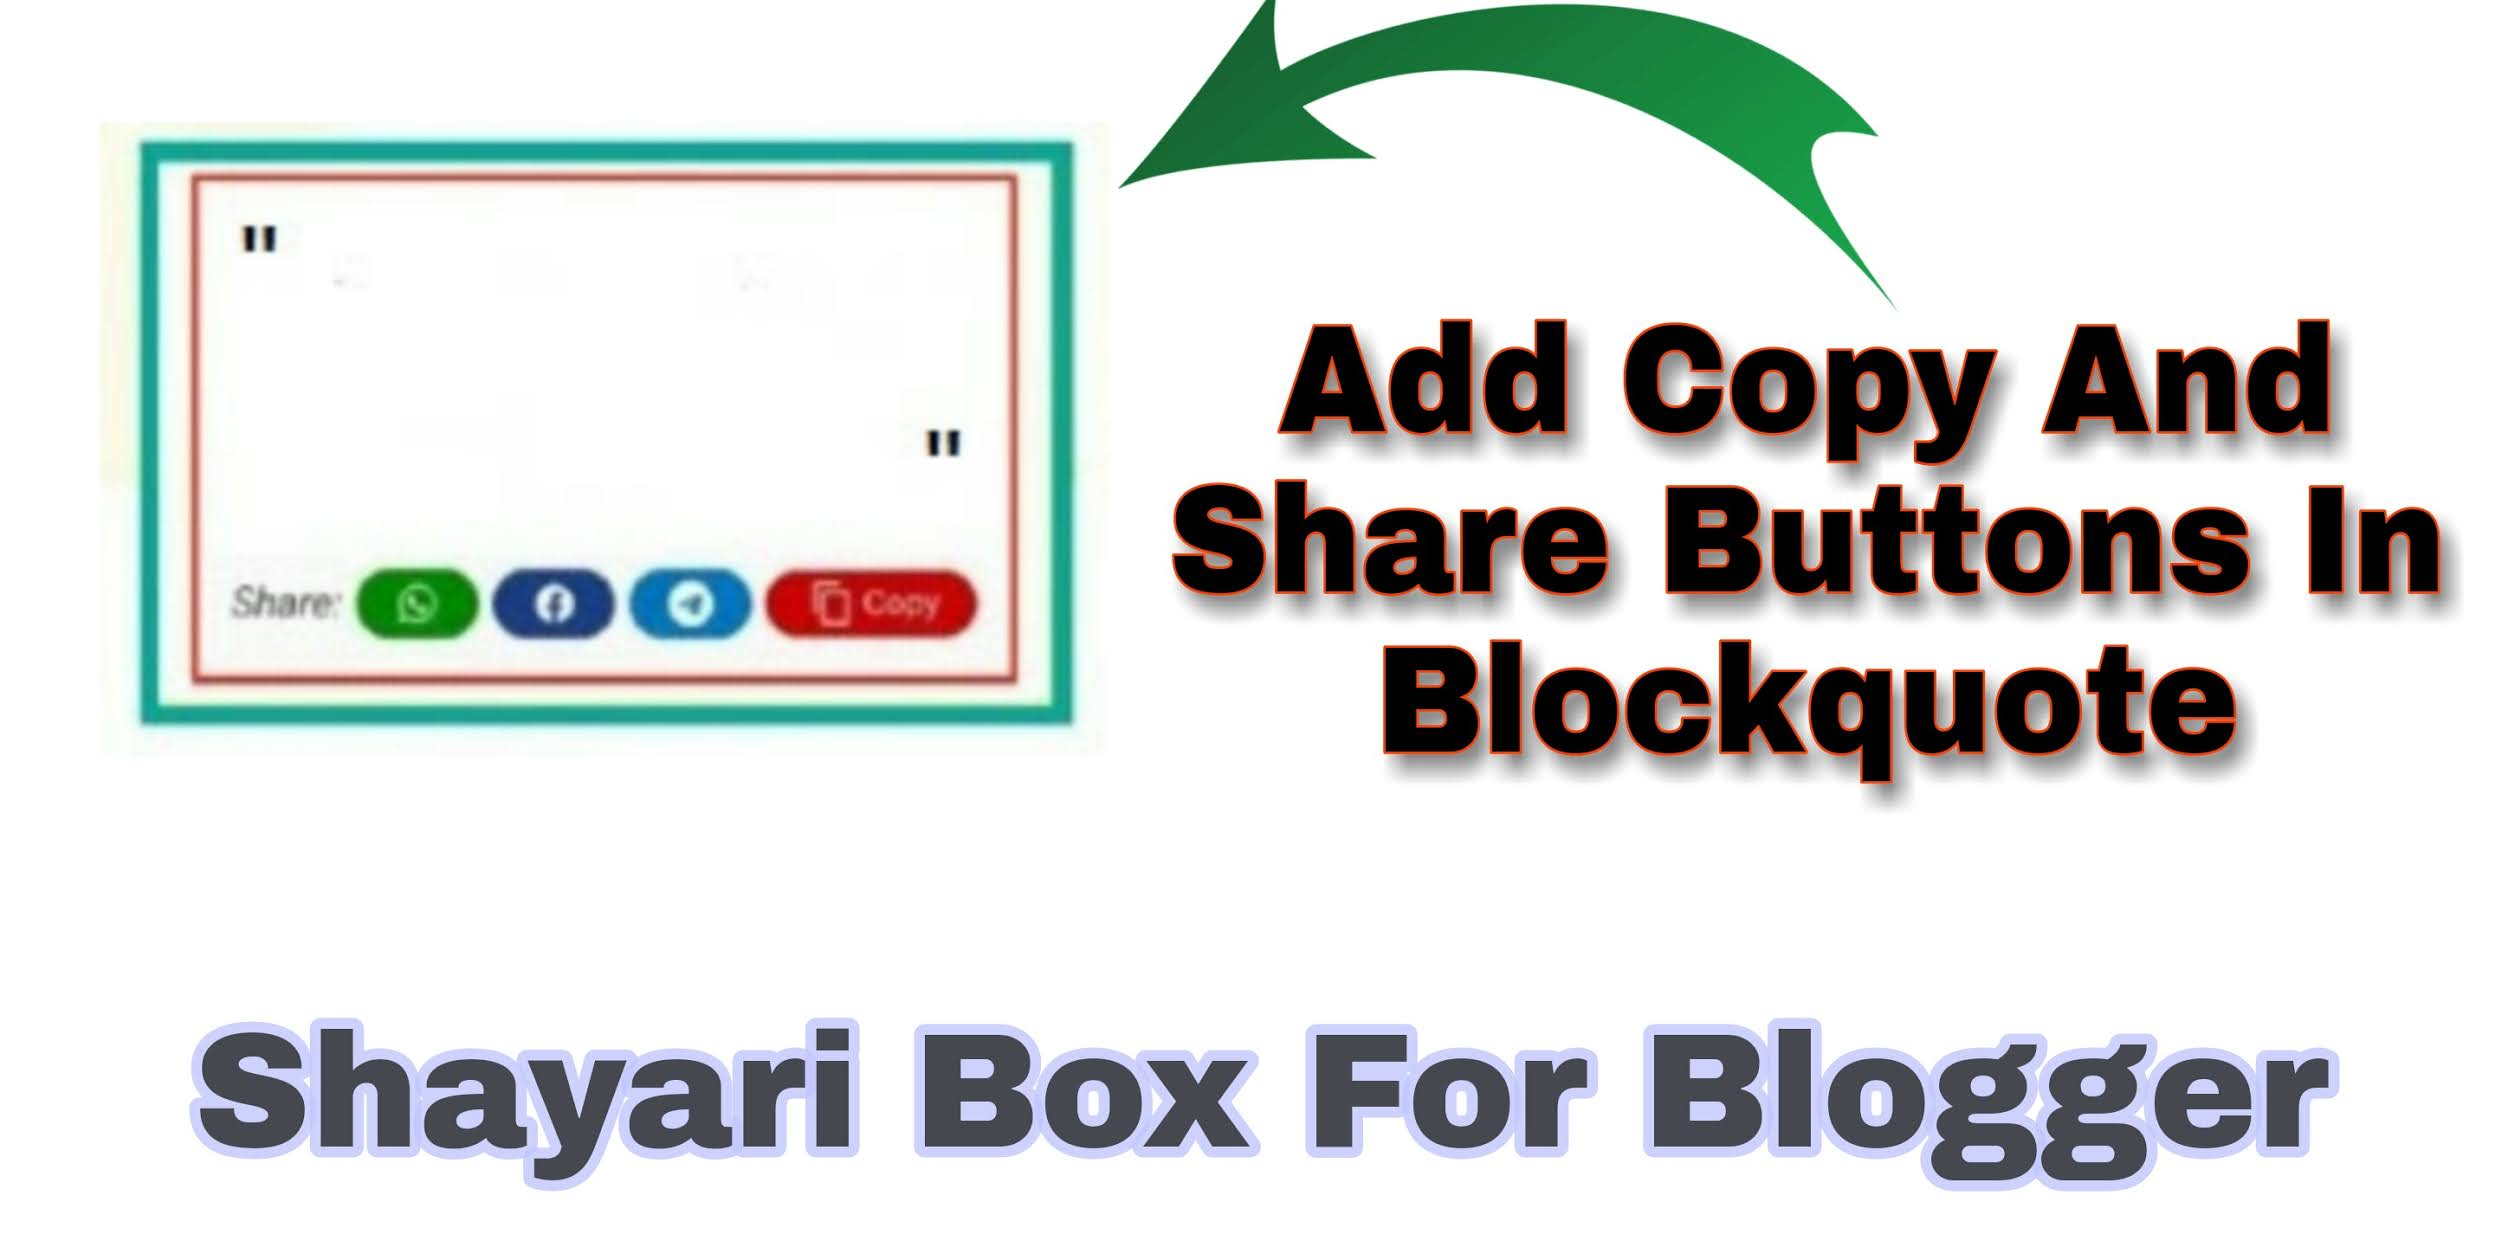 Add Copy And Share Buttons In Blockquote (Shayari Box)